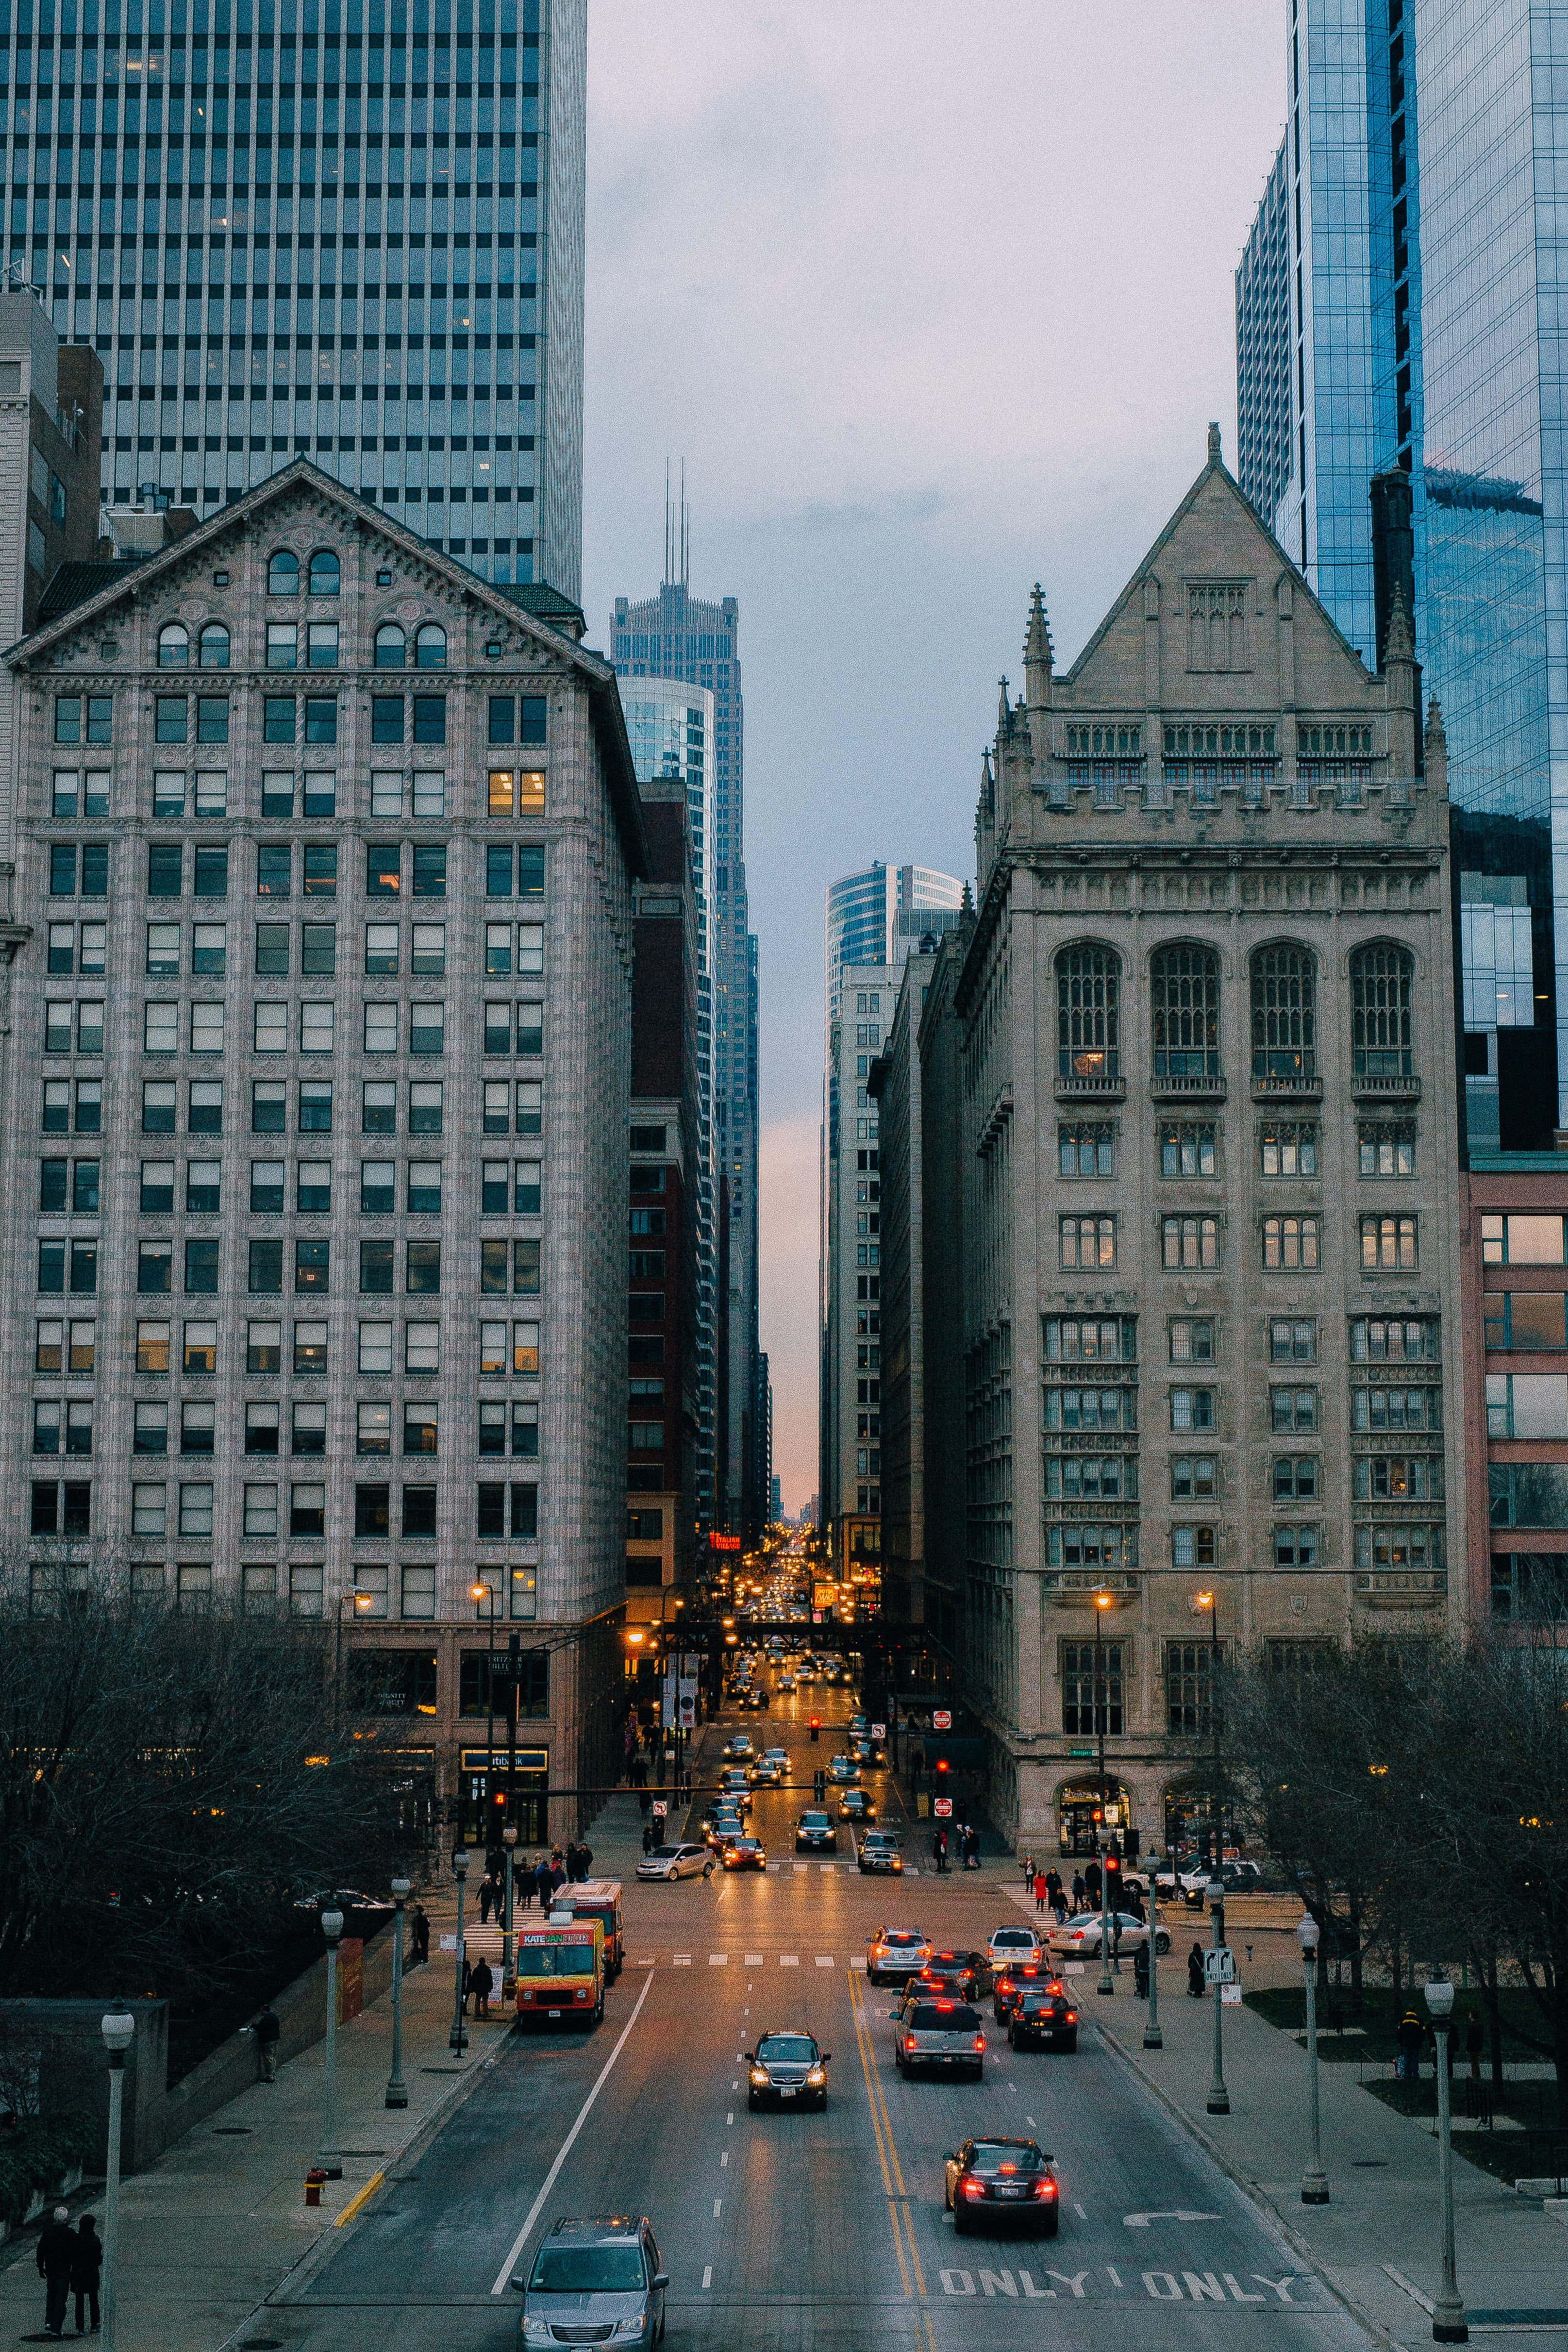 The streets of Chicago on an evening